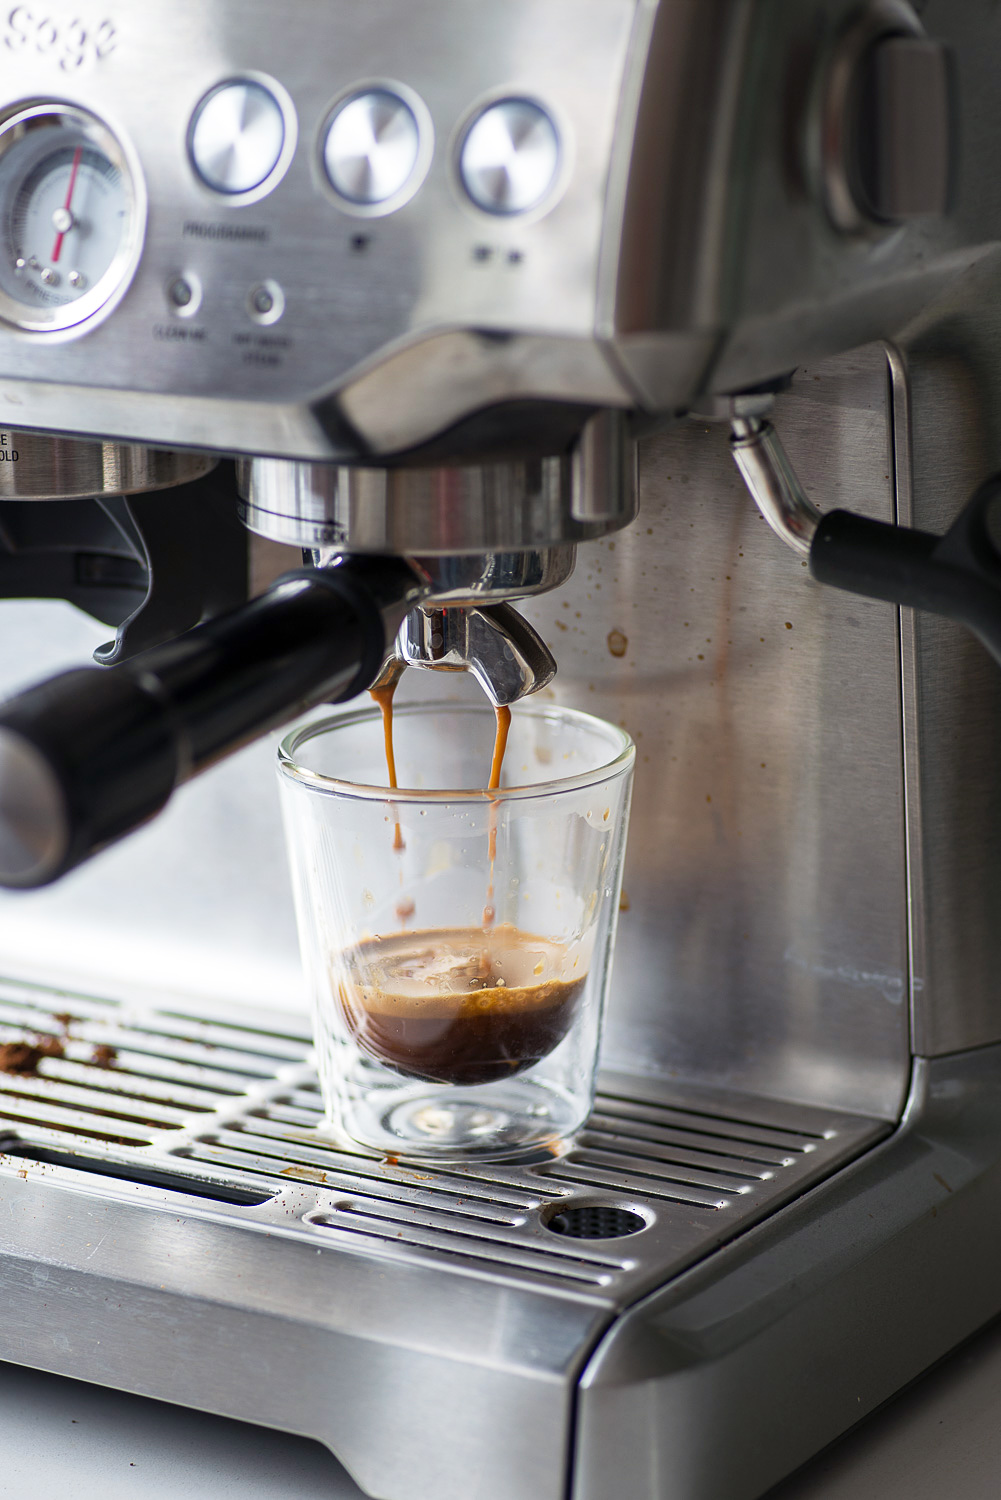 Barista Express Sage Appliances - extracting espresso